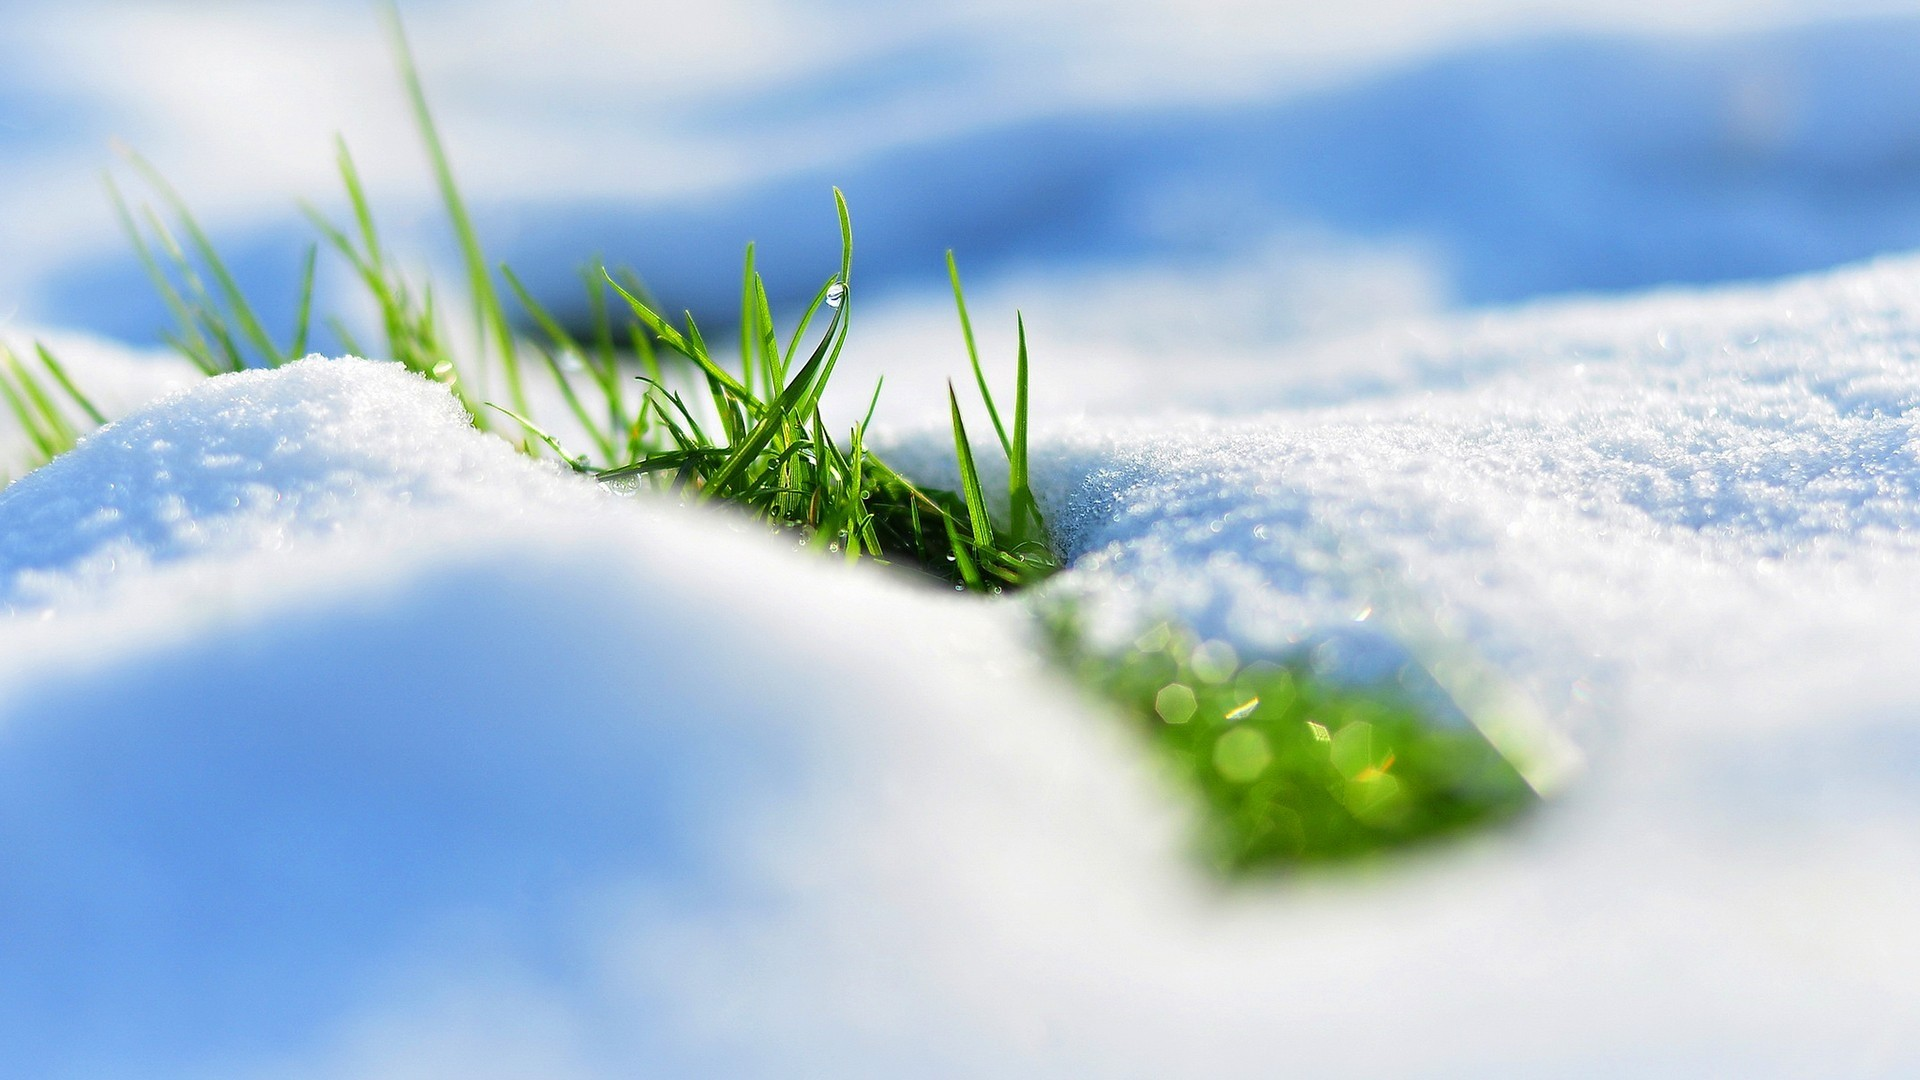 Preview wallpaper spring, snow, grass, reflections 1920×1080